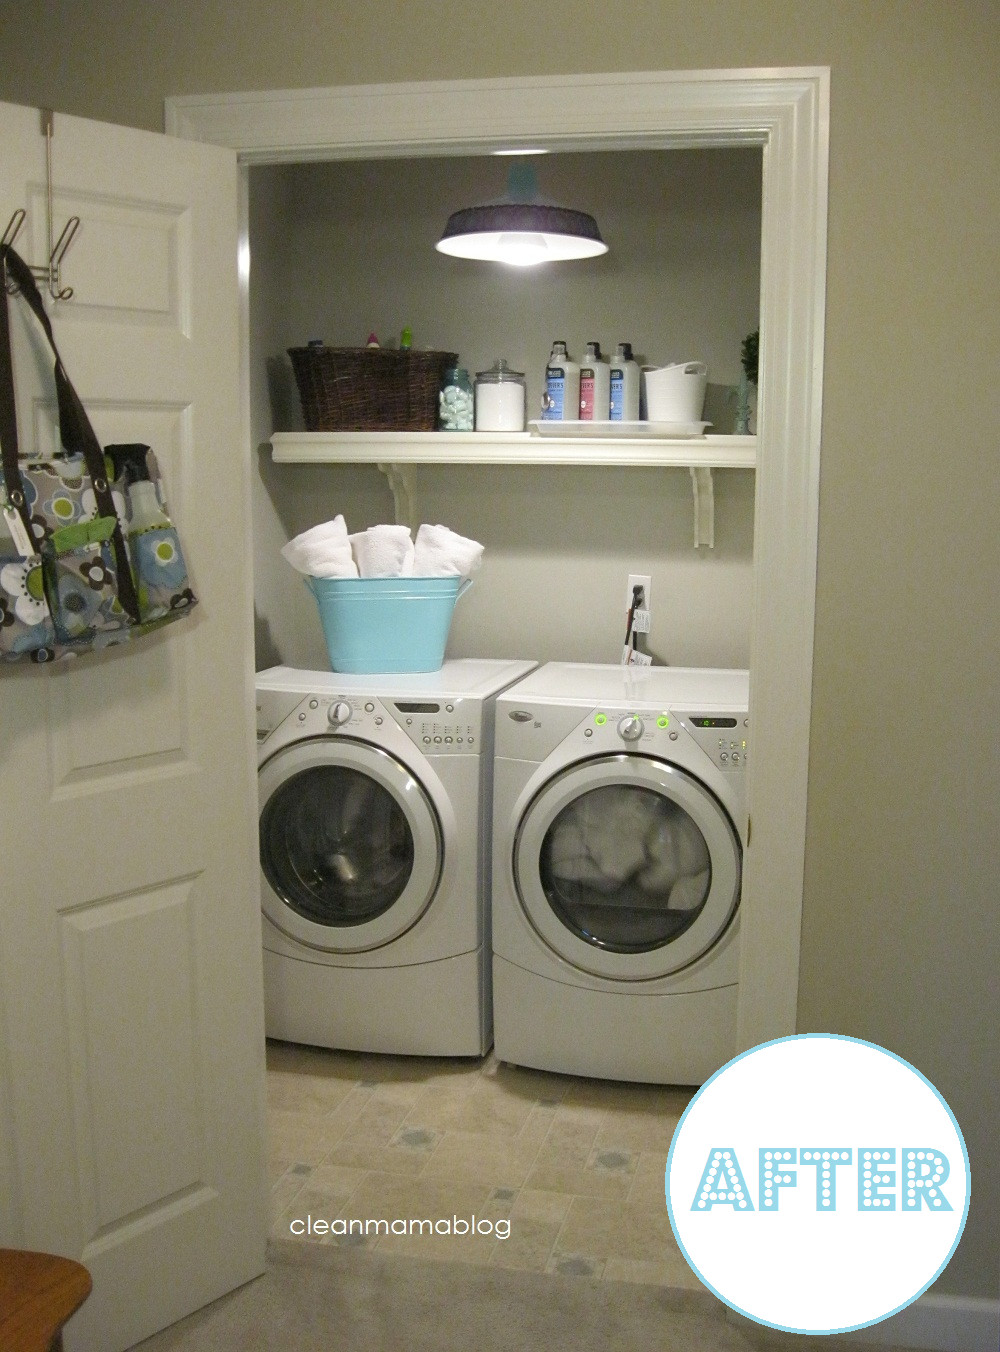 Best ideas about Diy Laundry Room Ideas . Save or Pin Diy Laundry Room Native Home Garden Design Now.